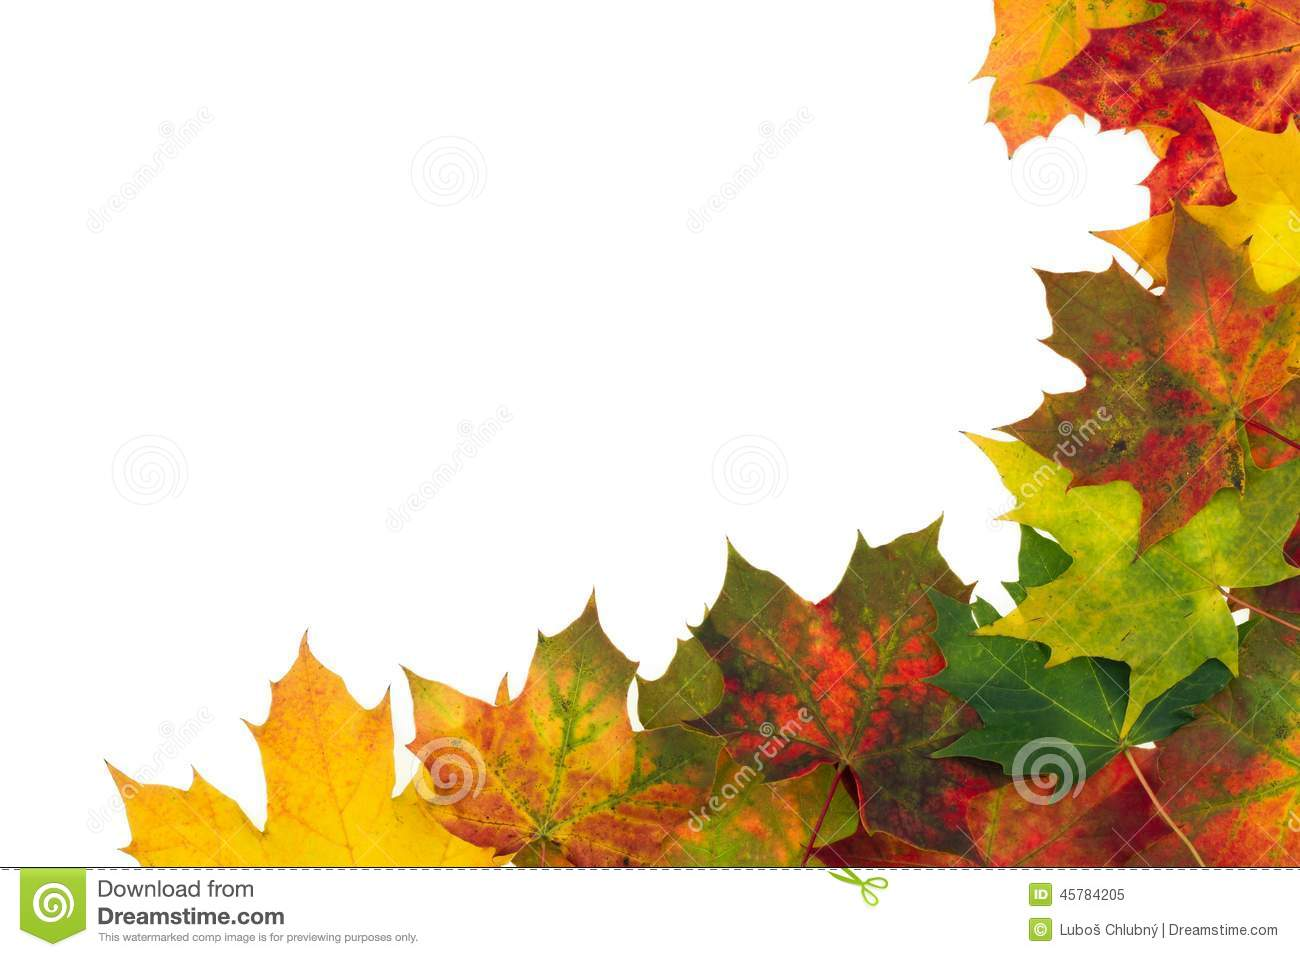 Autumn backdrop - frame composed of colorful autumn leaves